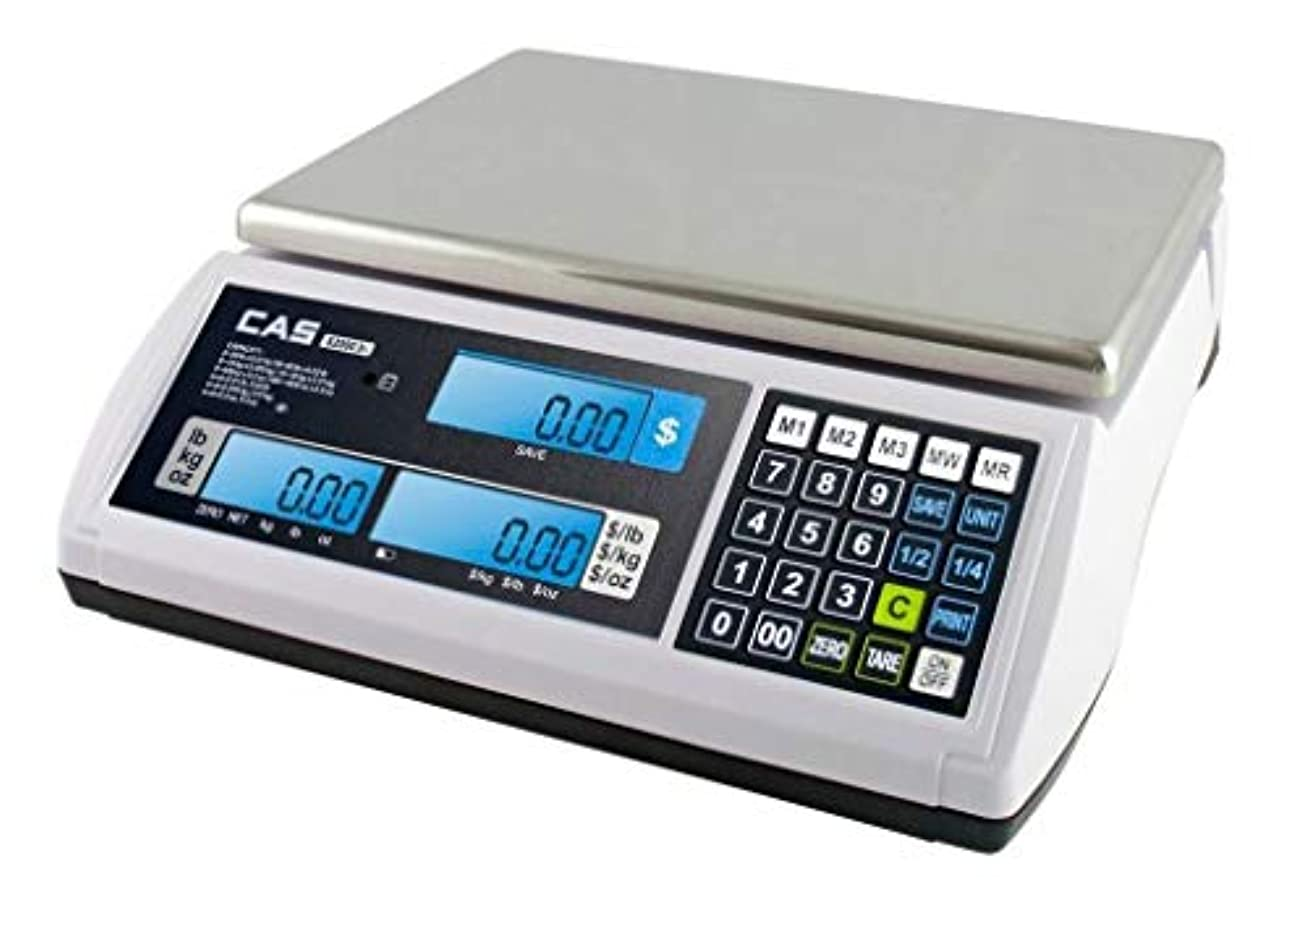 見込み疾患行列CAS S-2000 Jr Price Computing Scale with LCD Display 60 lbs by CAS